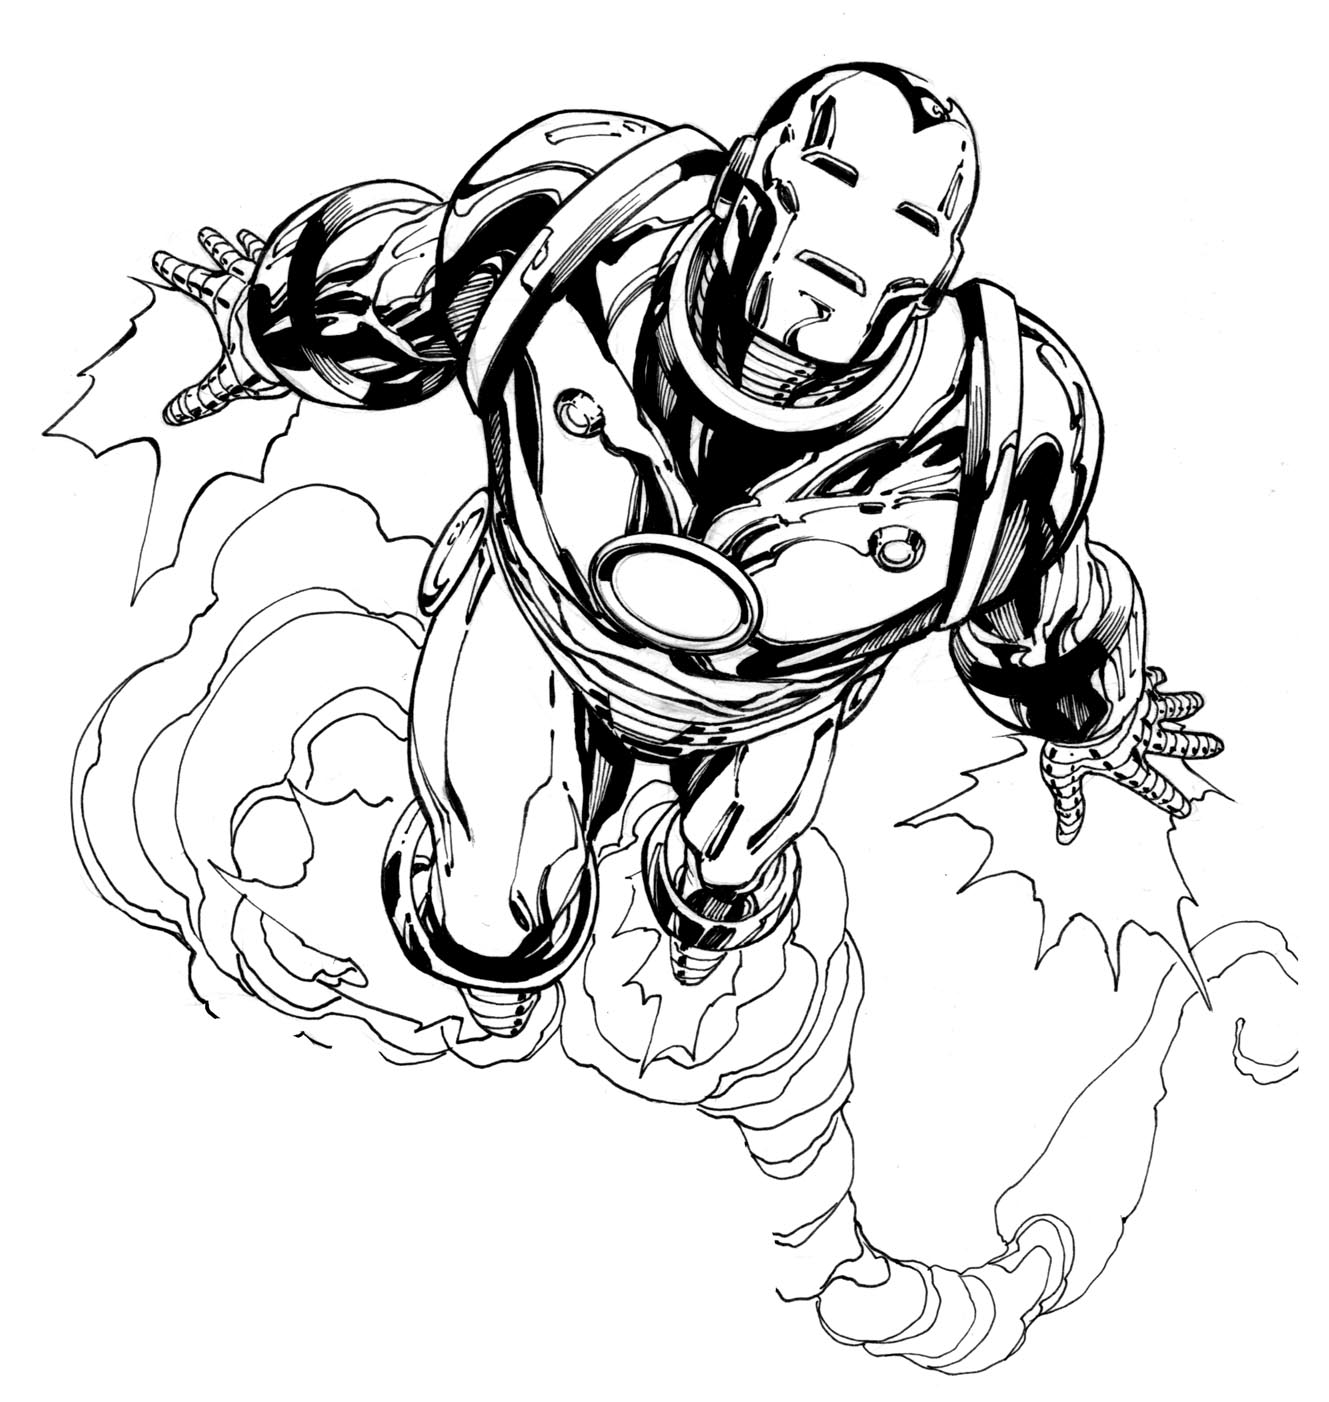 iron man pictures for colouring iron man coloring page coloring pages for kids for pictures iron man colouring